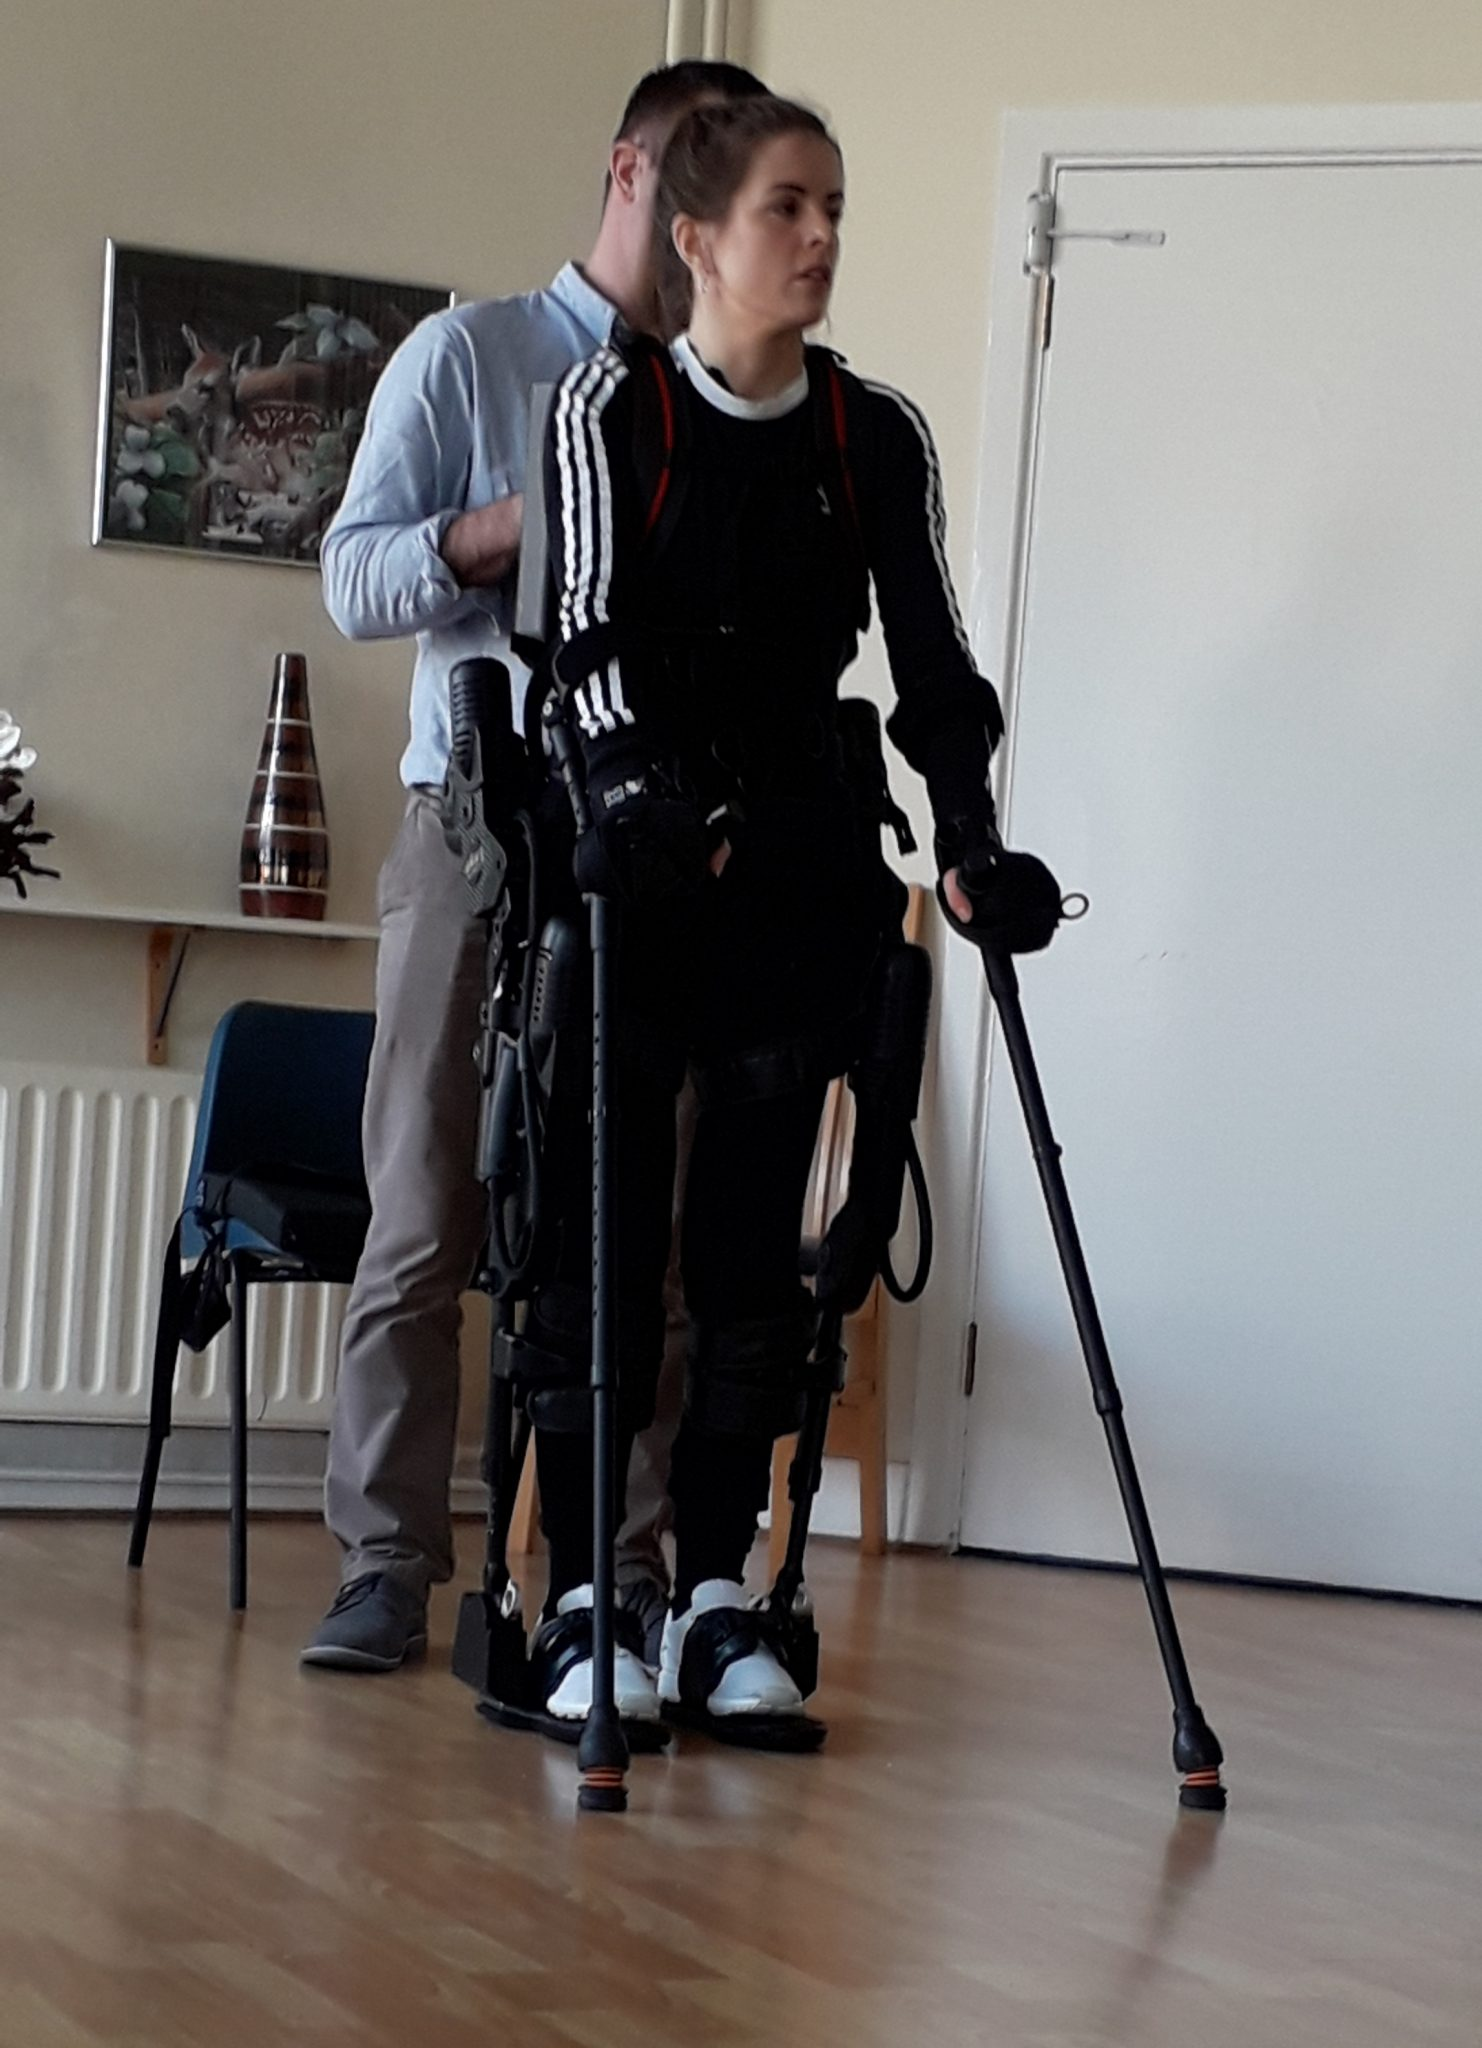 Exso Bionic Suit enable people with paralysis or lower limb weakness to walk